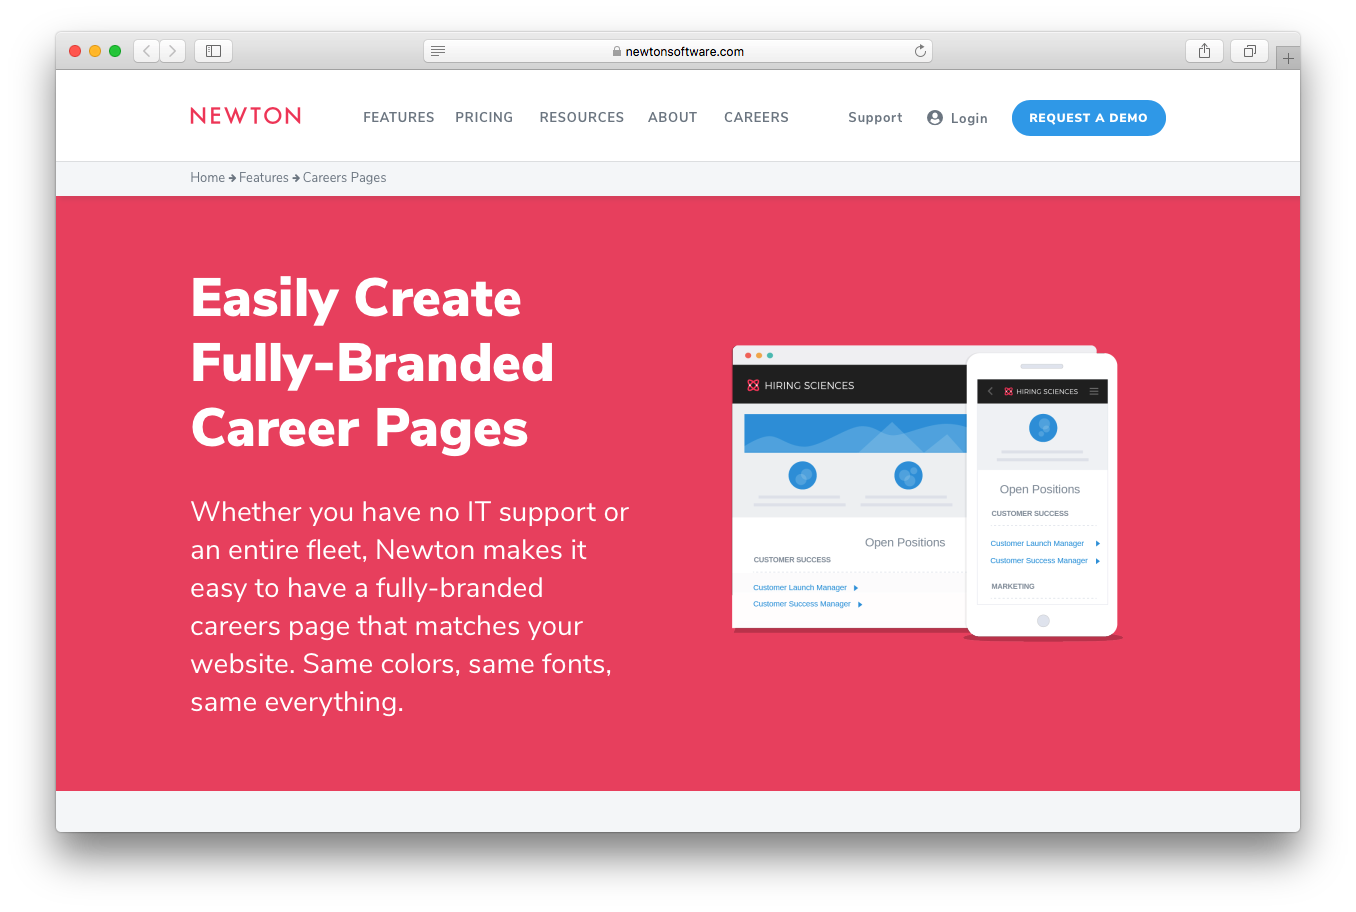 Newton branded career pages